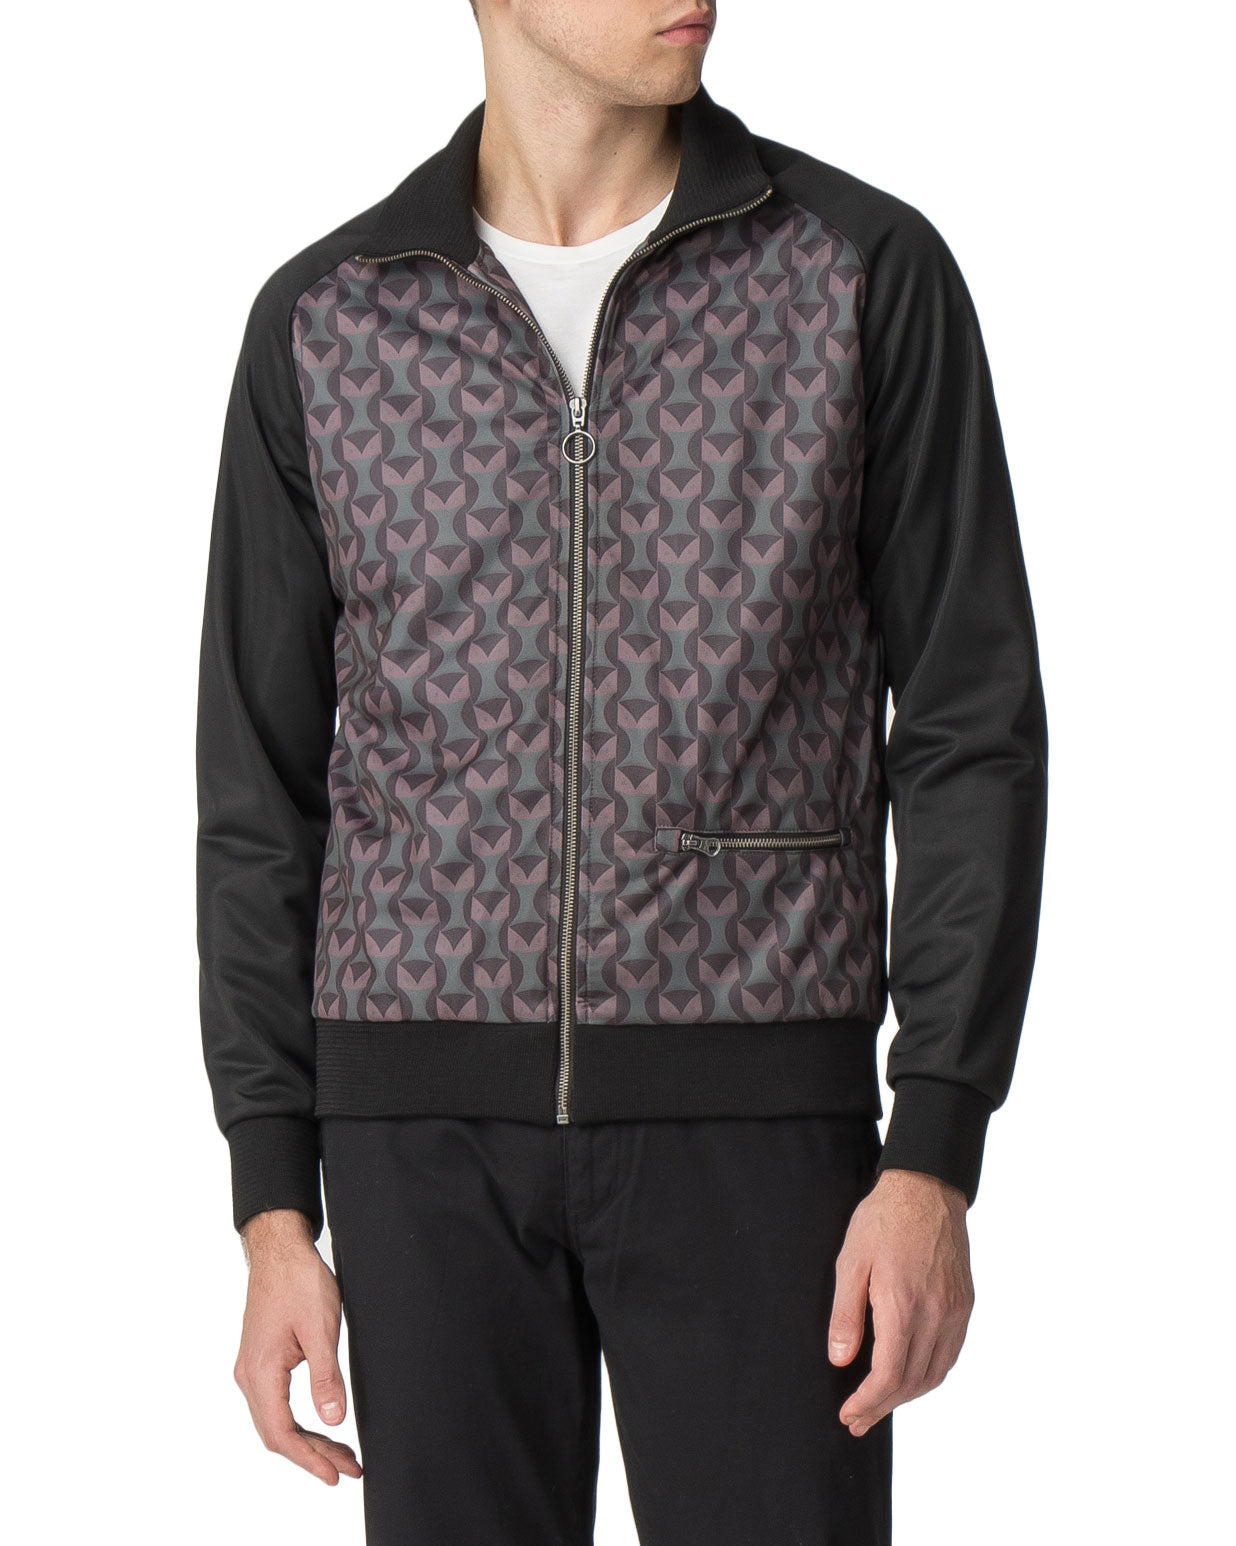 Printed Owl Track Jacket - Black